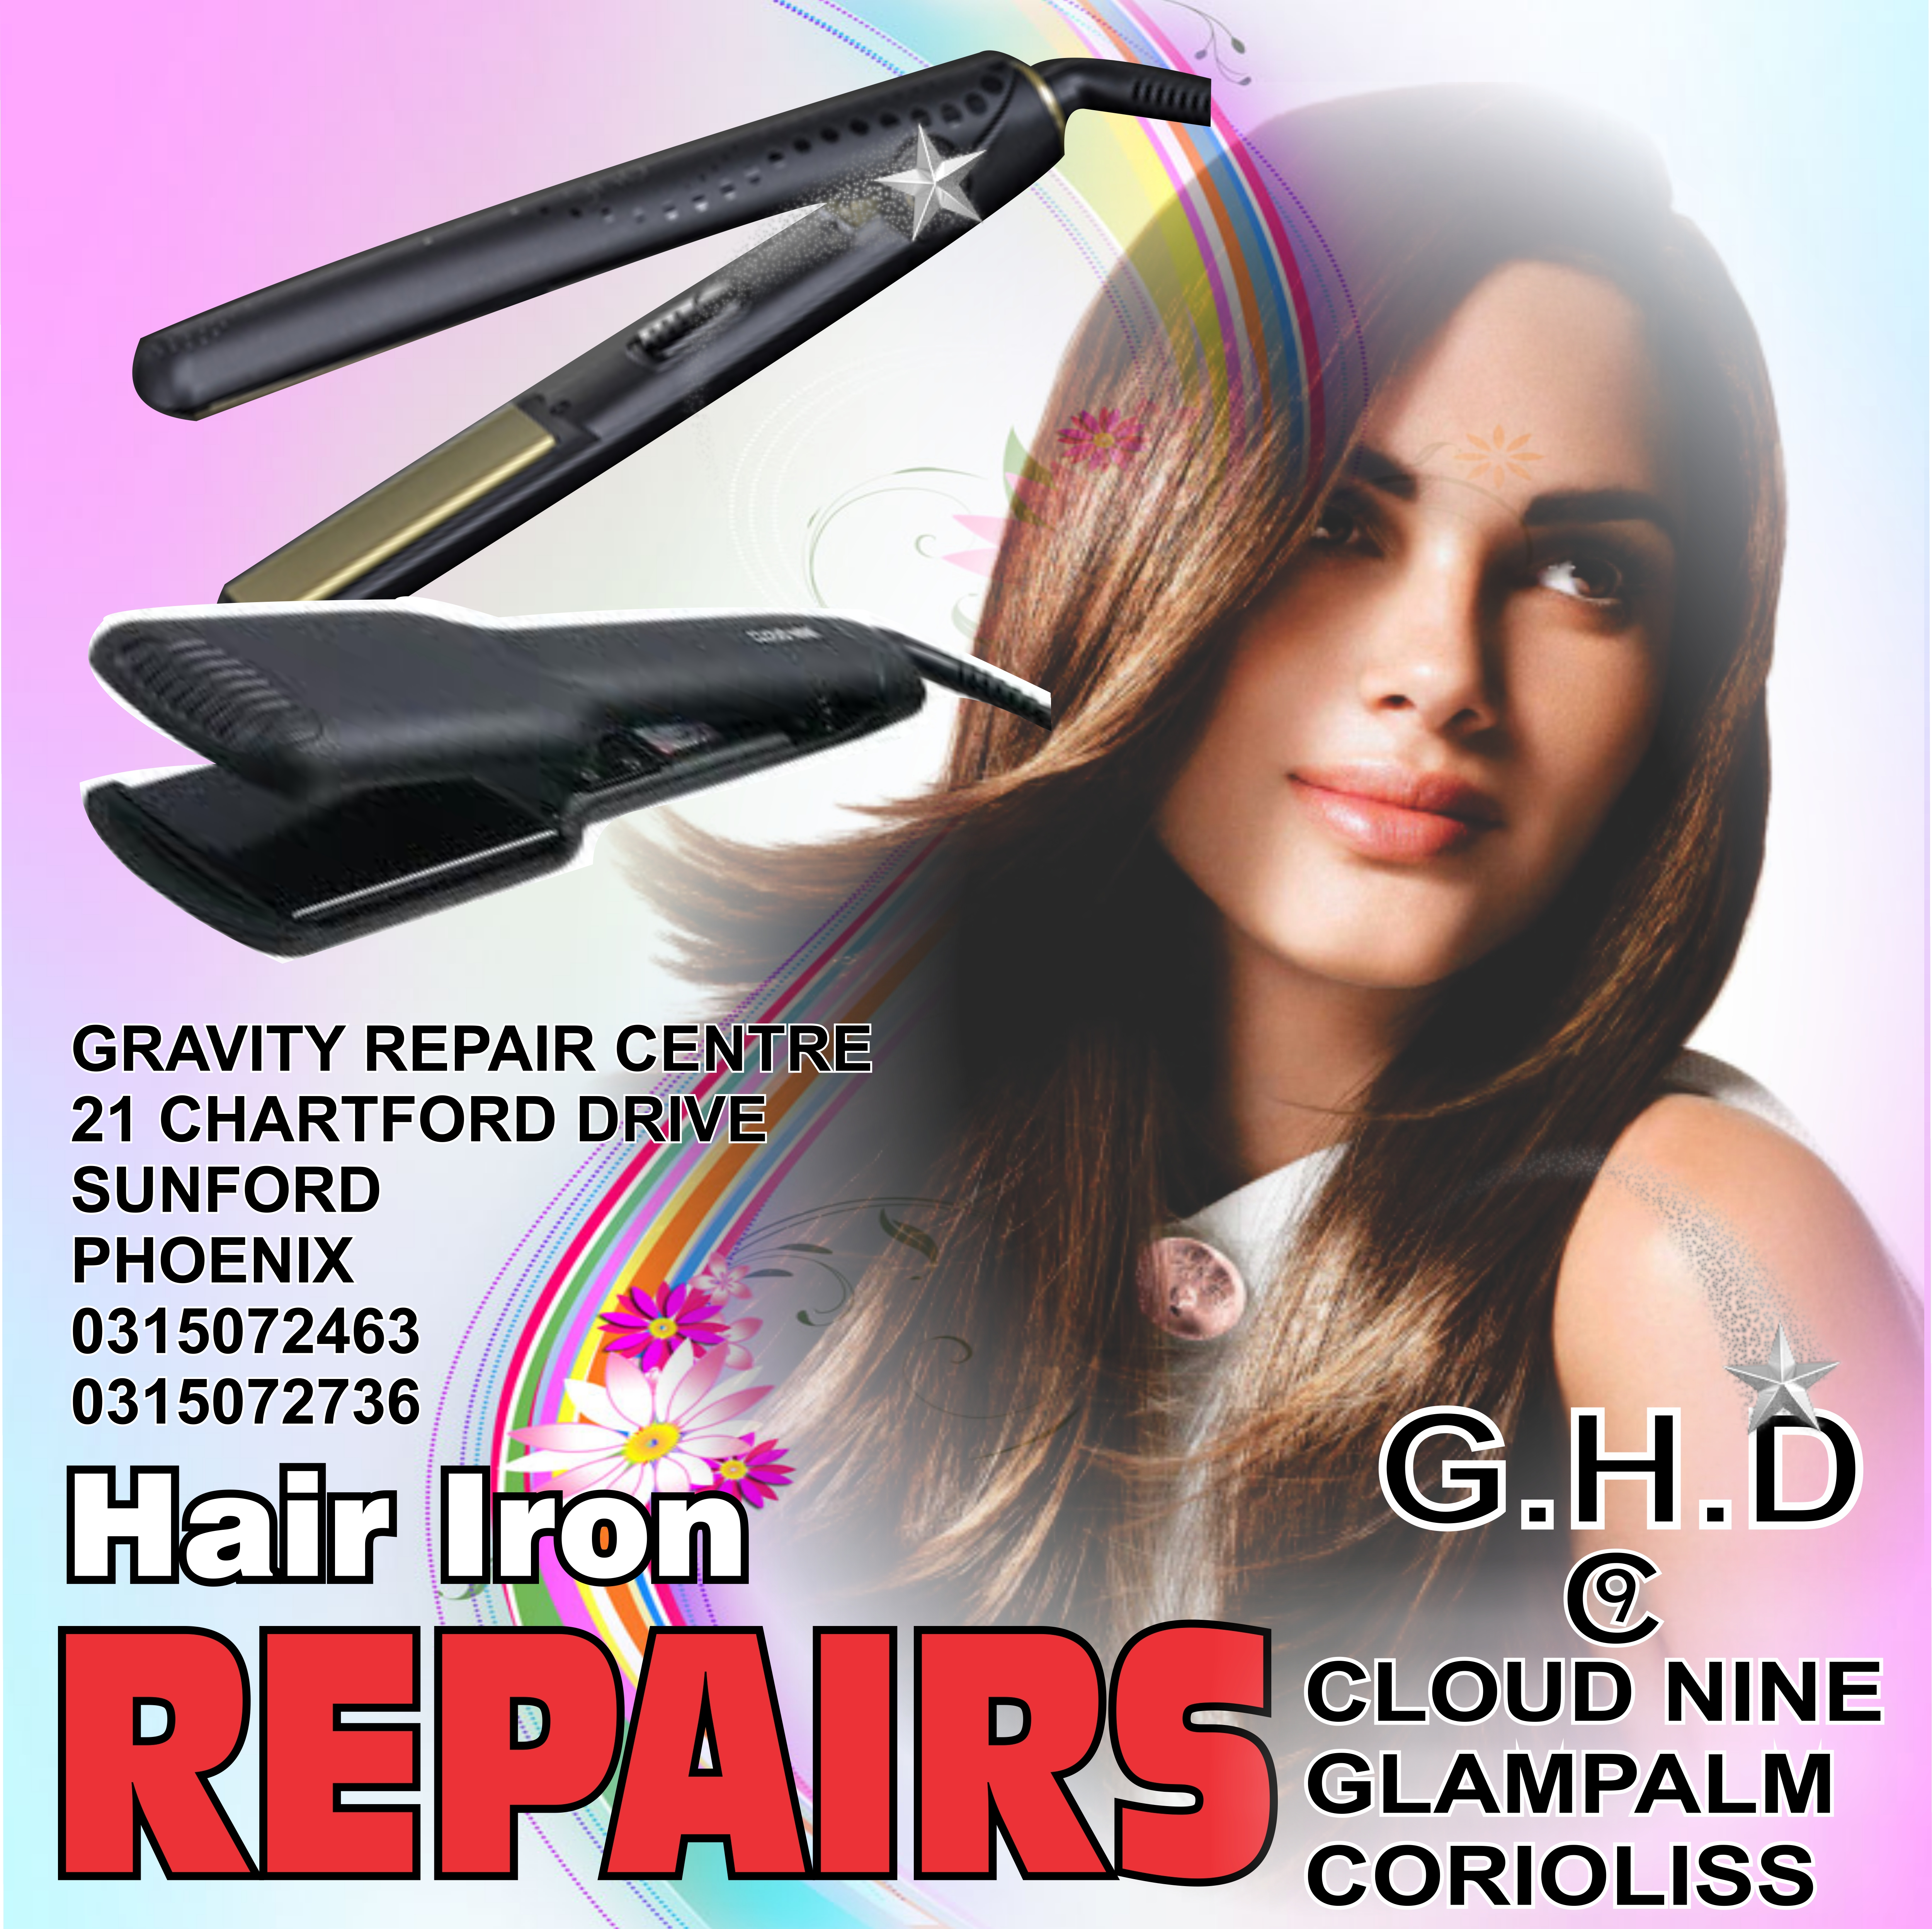 ir iron repairs professionally done at GRAVITY audio phoenix durban. The only service provider in durban dedicated to the repairing & servicing of broken & damaged ghd hair irons. Gravity repair centre for all ghd hair irons durban kzn   ghd iron repair centre, situated in phoenix Durban, GRAVITY AUDIO tel 0315072463 Replacement circuit boards for ghd hair irons available at Gravity audio phoenix Durban.  ghd hair iron repairs CLOUD 9 HAIR IRON REPAIRS  ghd hair iron repairs @ gravity repair store durban phoenix gravity audio 0315072463  cloud 9 hair iron repairs store  cloud nine hair irons repairs durban  cloud nine hair iron repairs @gravity repair shop phoenix durban gravity audio  ghd repairs cloud 9 hair iron repairs